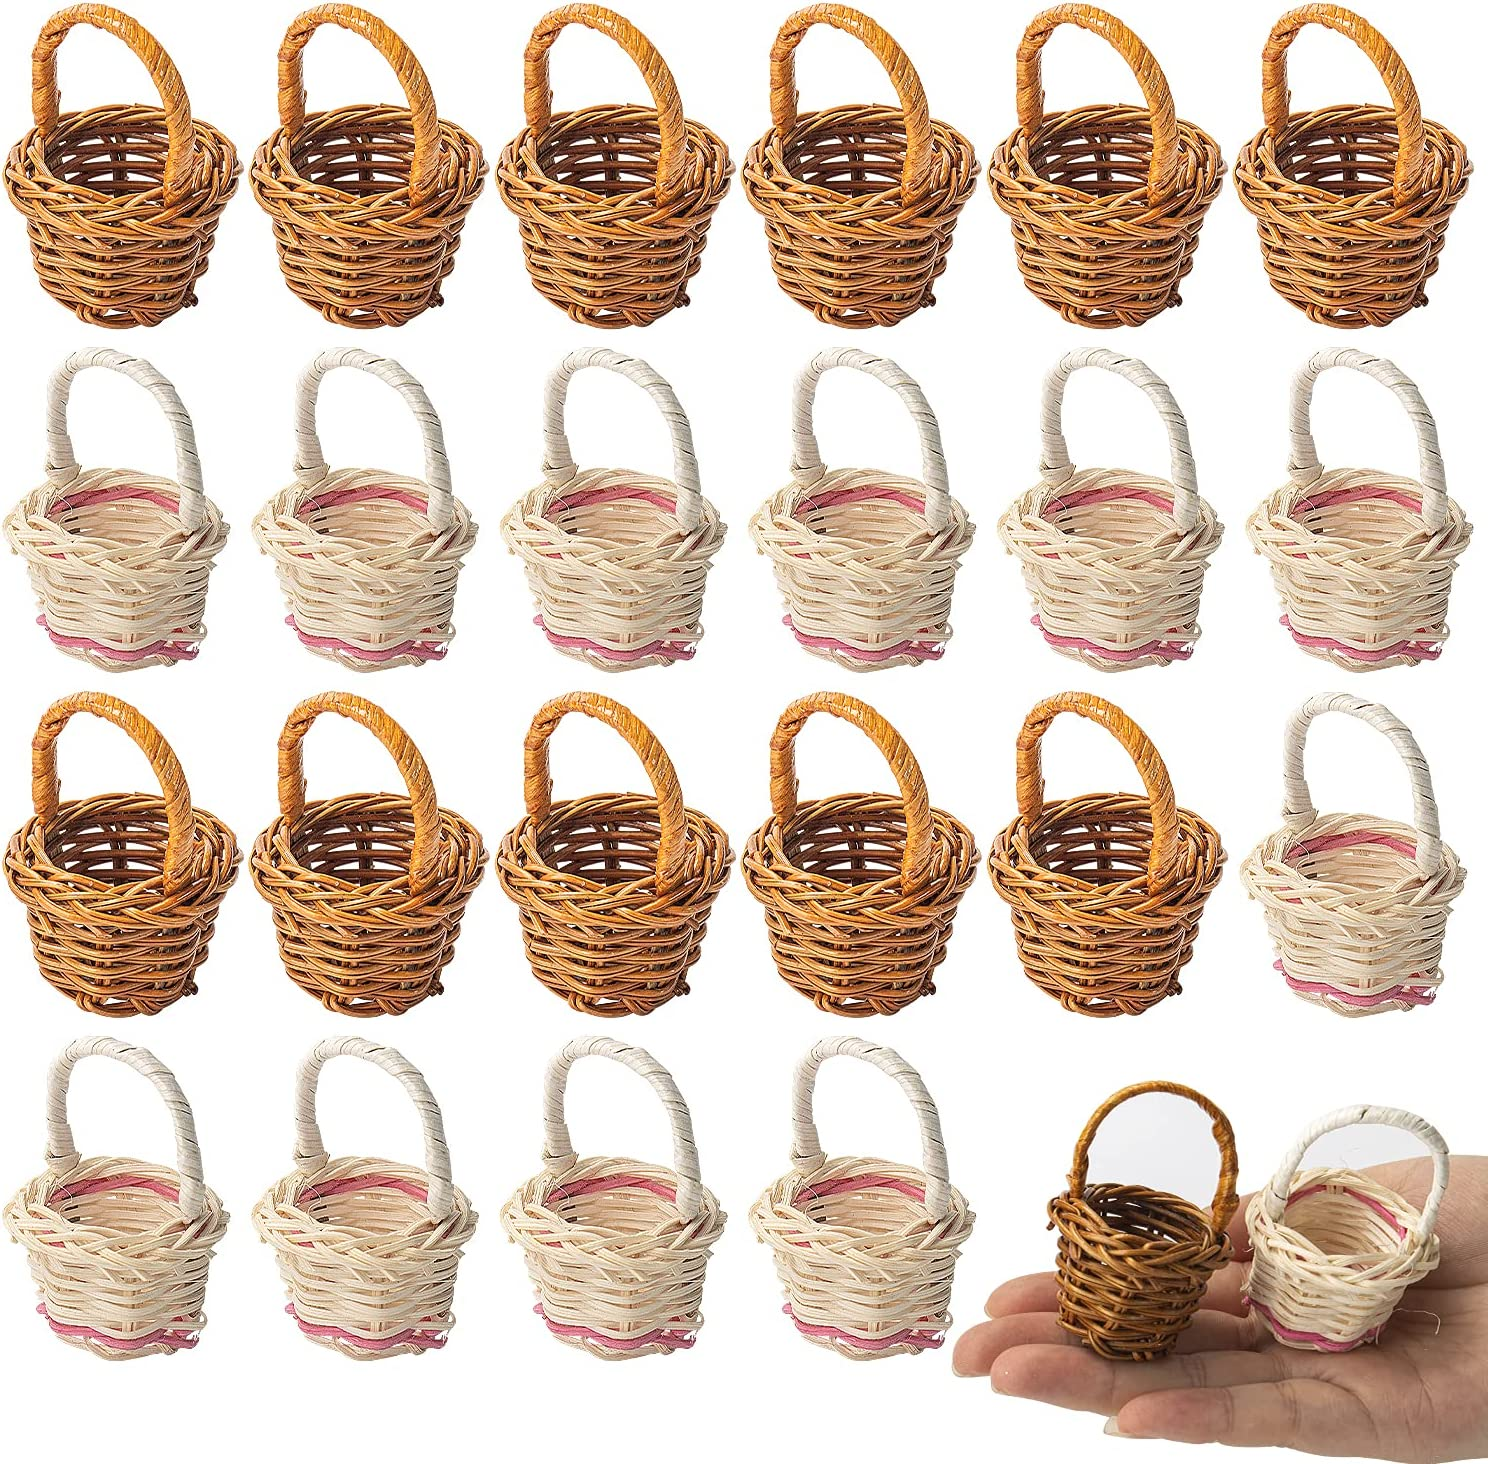 Hiawbon 24 Special Campaign Pack Dollhouse Miniature Woven Super sale period limited Wood Figurines Basket